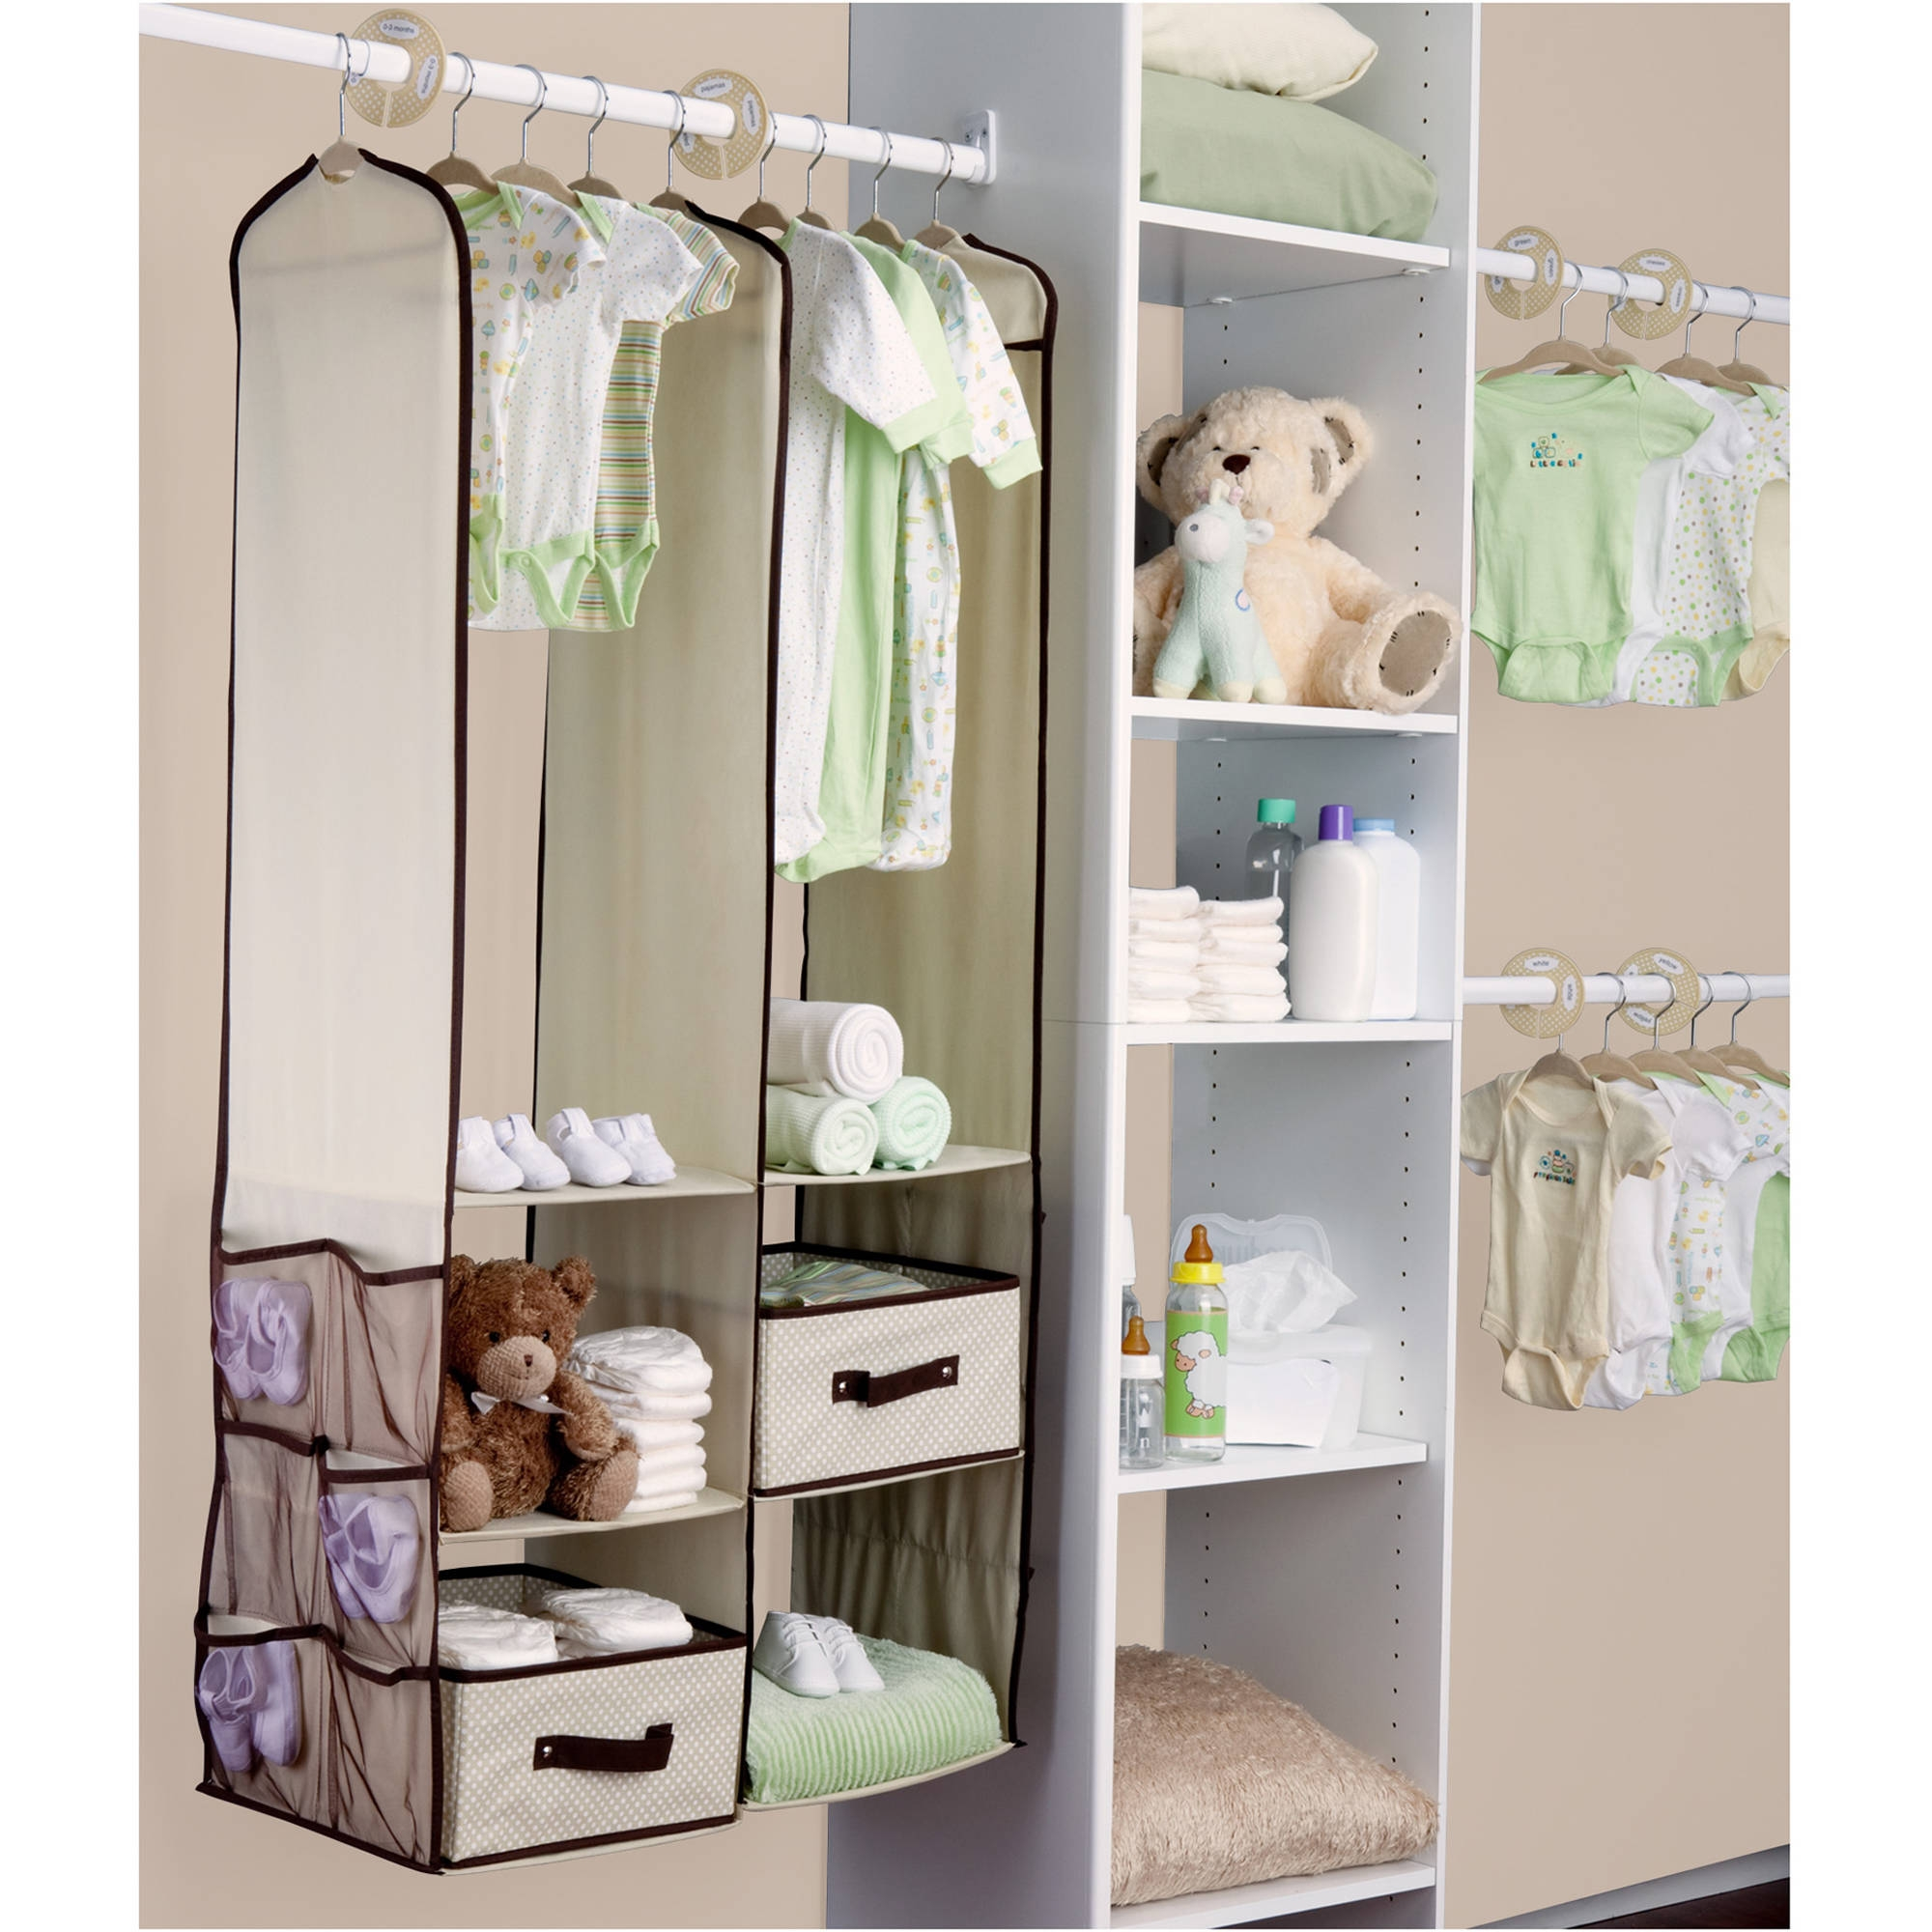 Dex Ba Playard Organizer Gray Walmart Throughout Wardrobe For Baby Clothes (Image 20 of 25)